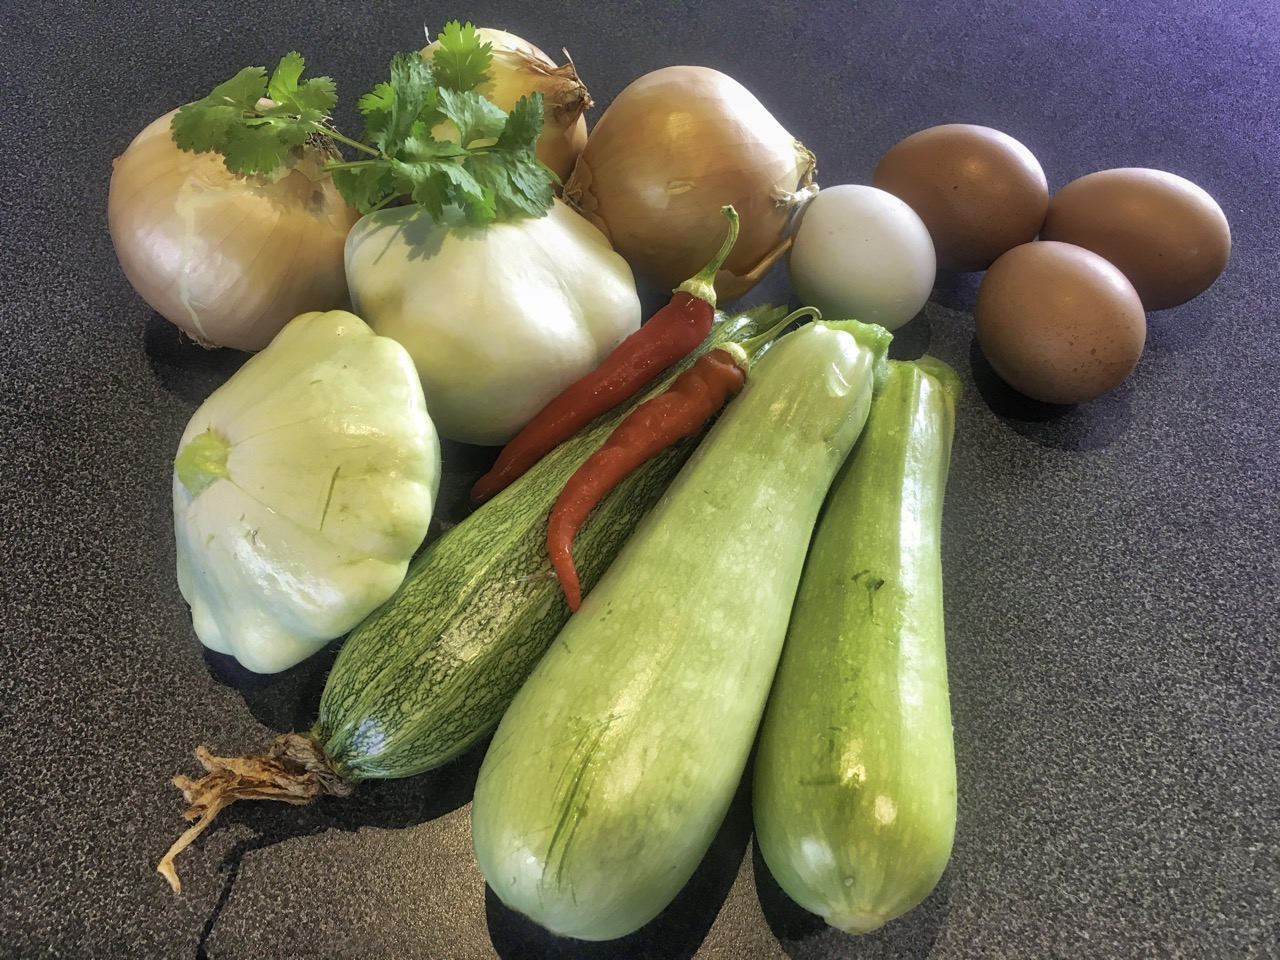 All home grown, even the blue and brown eggs. These onions and courgettes aren't huge so I've upped the quantity.